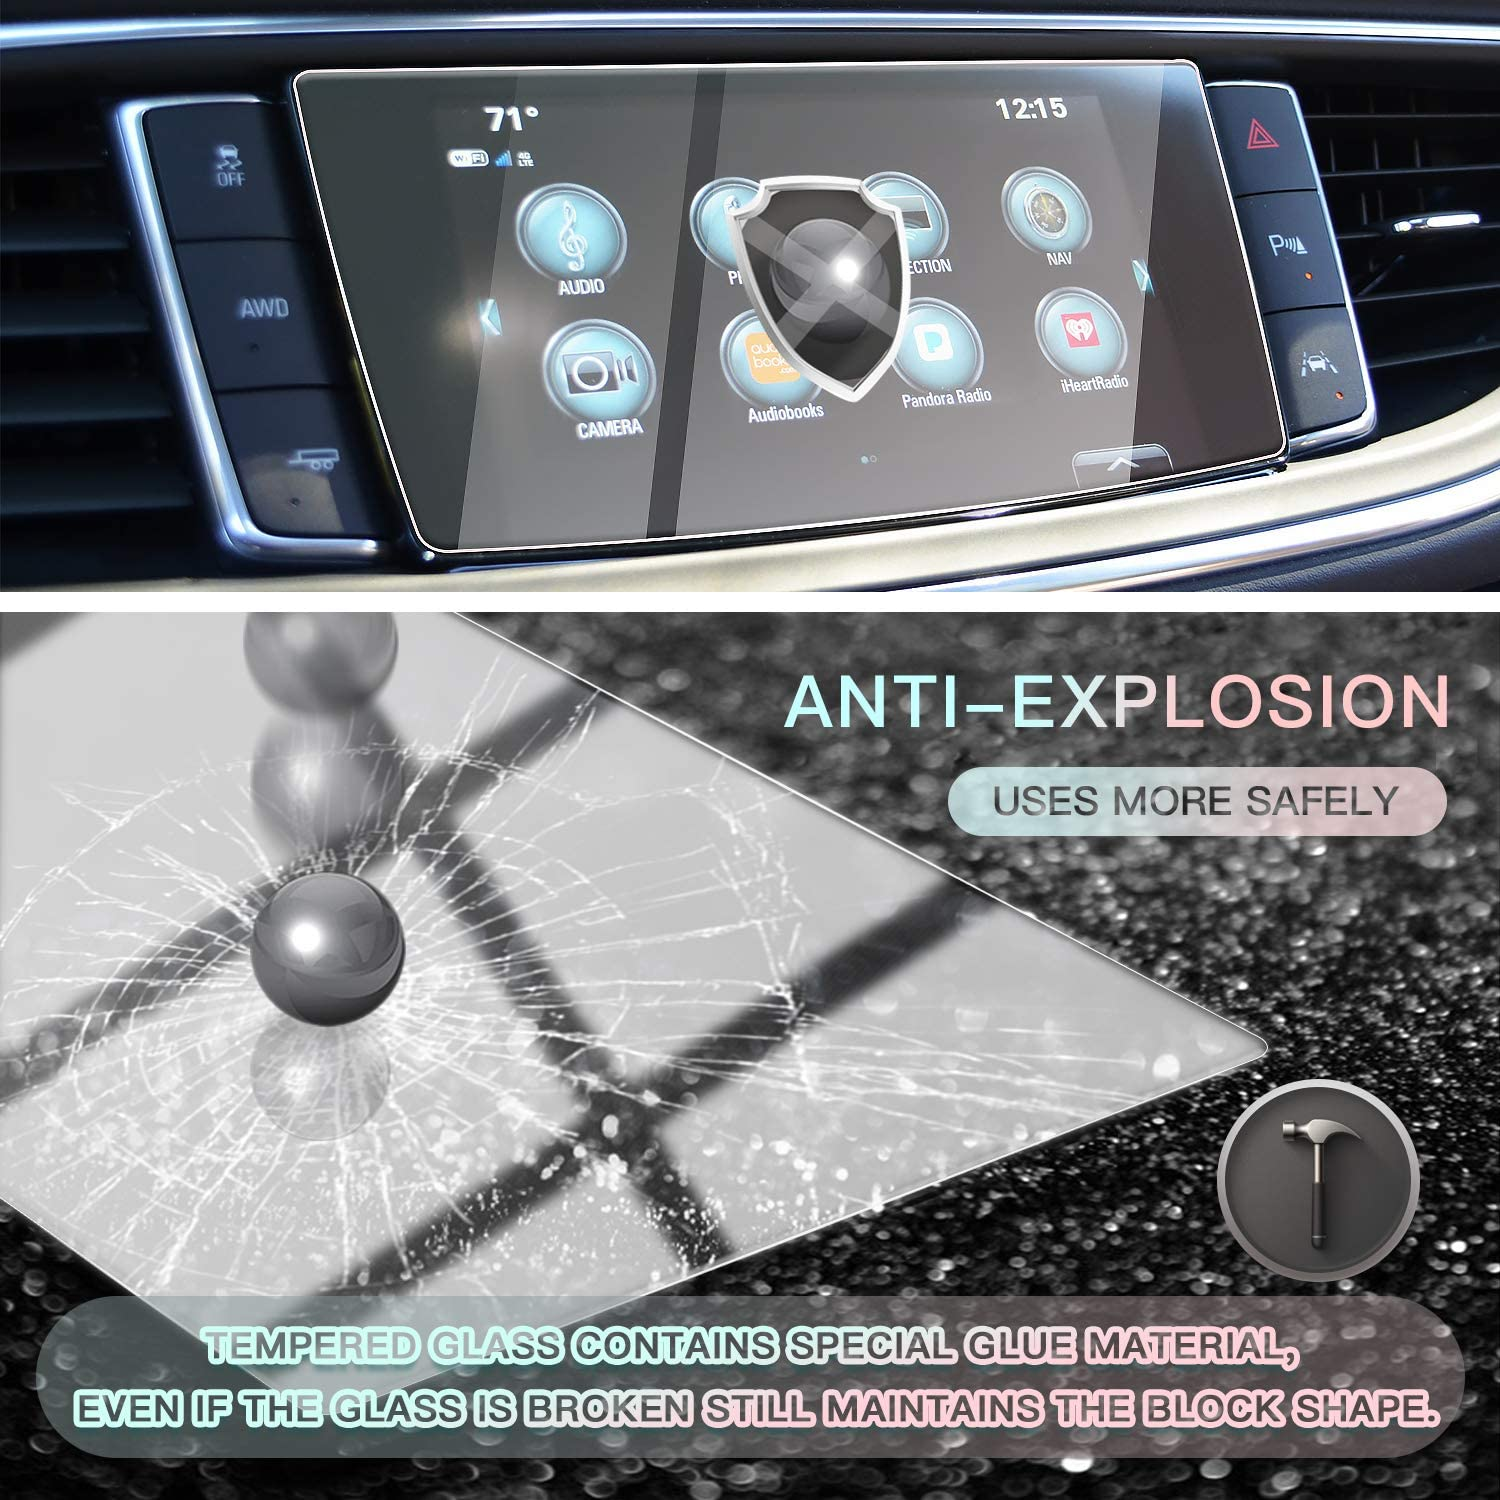 CDEFG Car Screen Protector Center Control Navigation Touch Screen Protector for 2018 2019 Buick Enclave 8 Inch Tempered Glass High Clarity Scratch Resistance